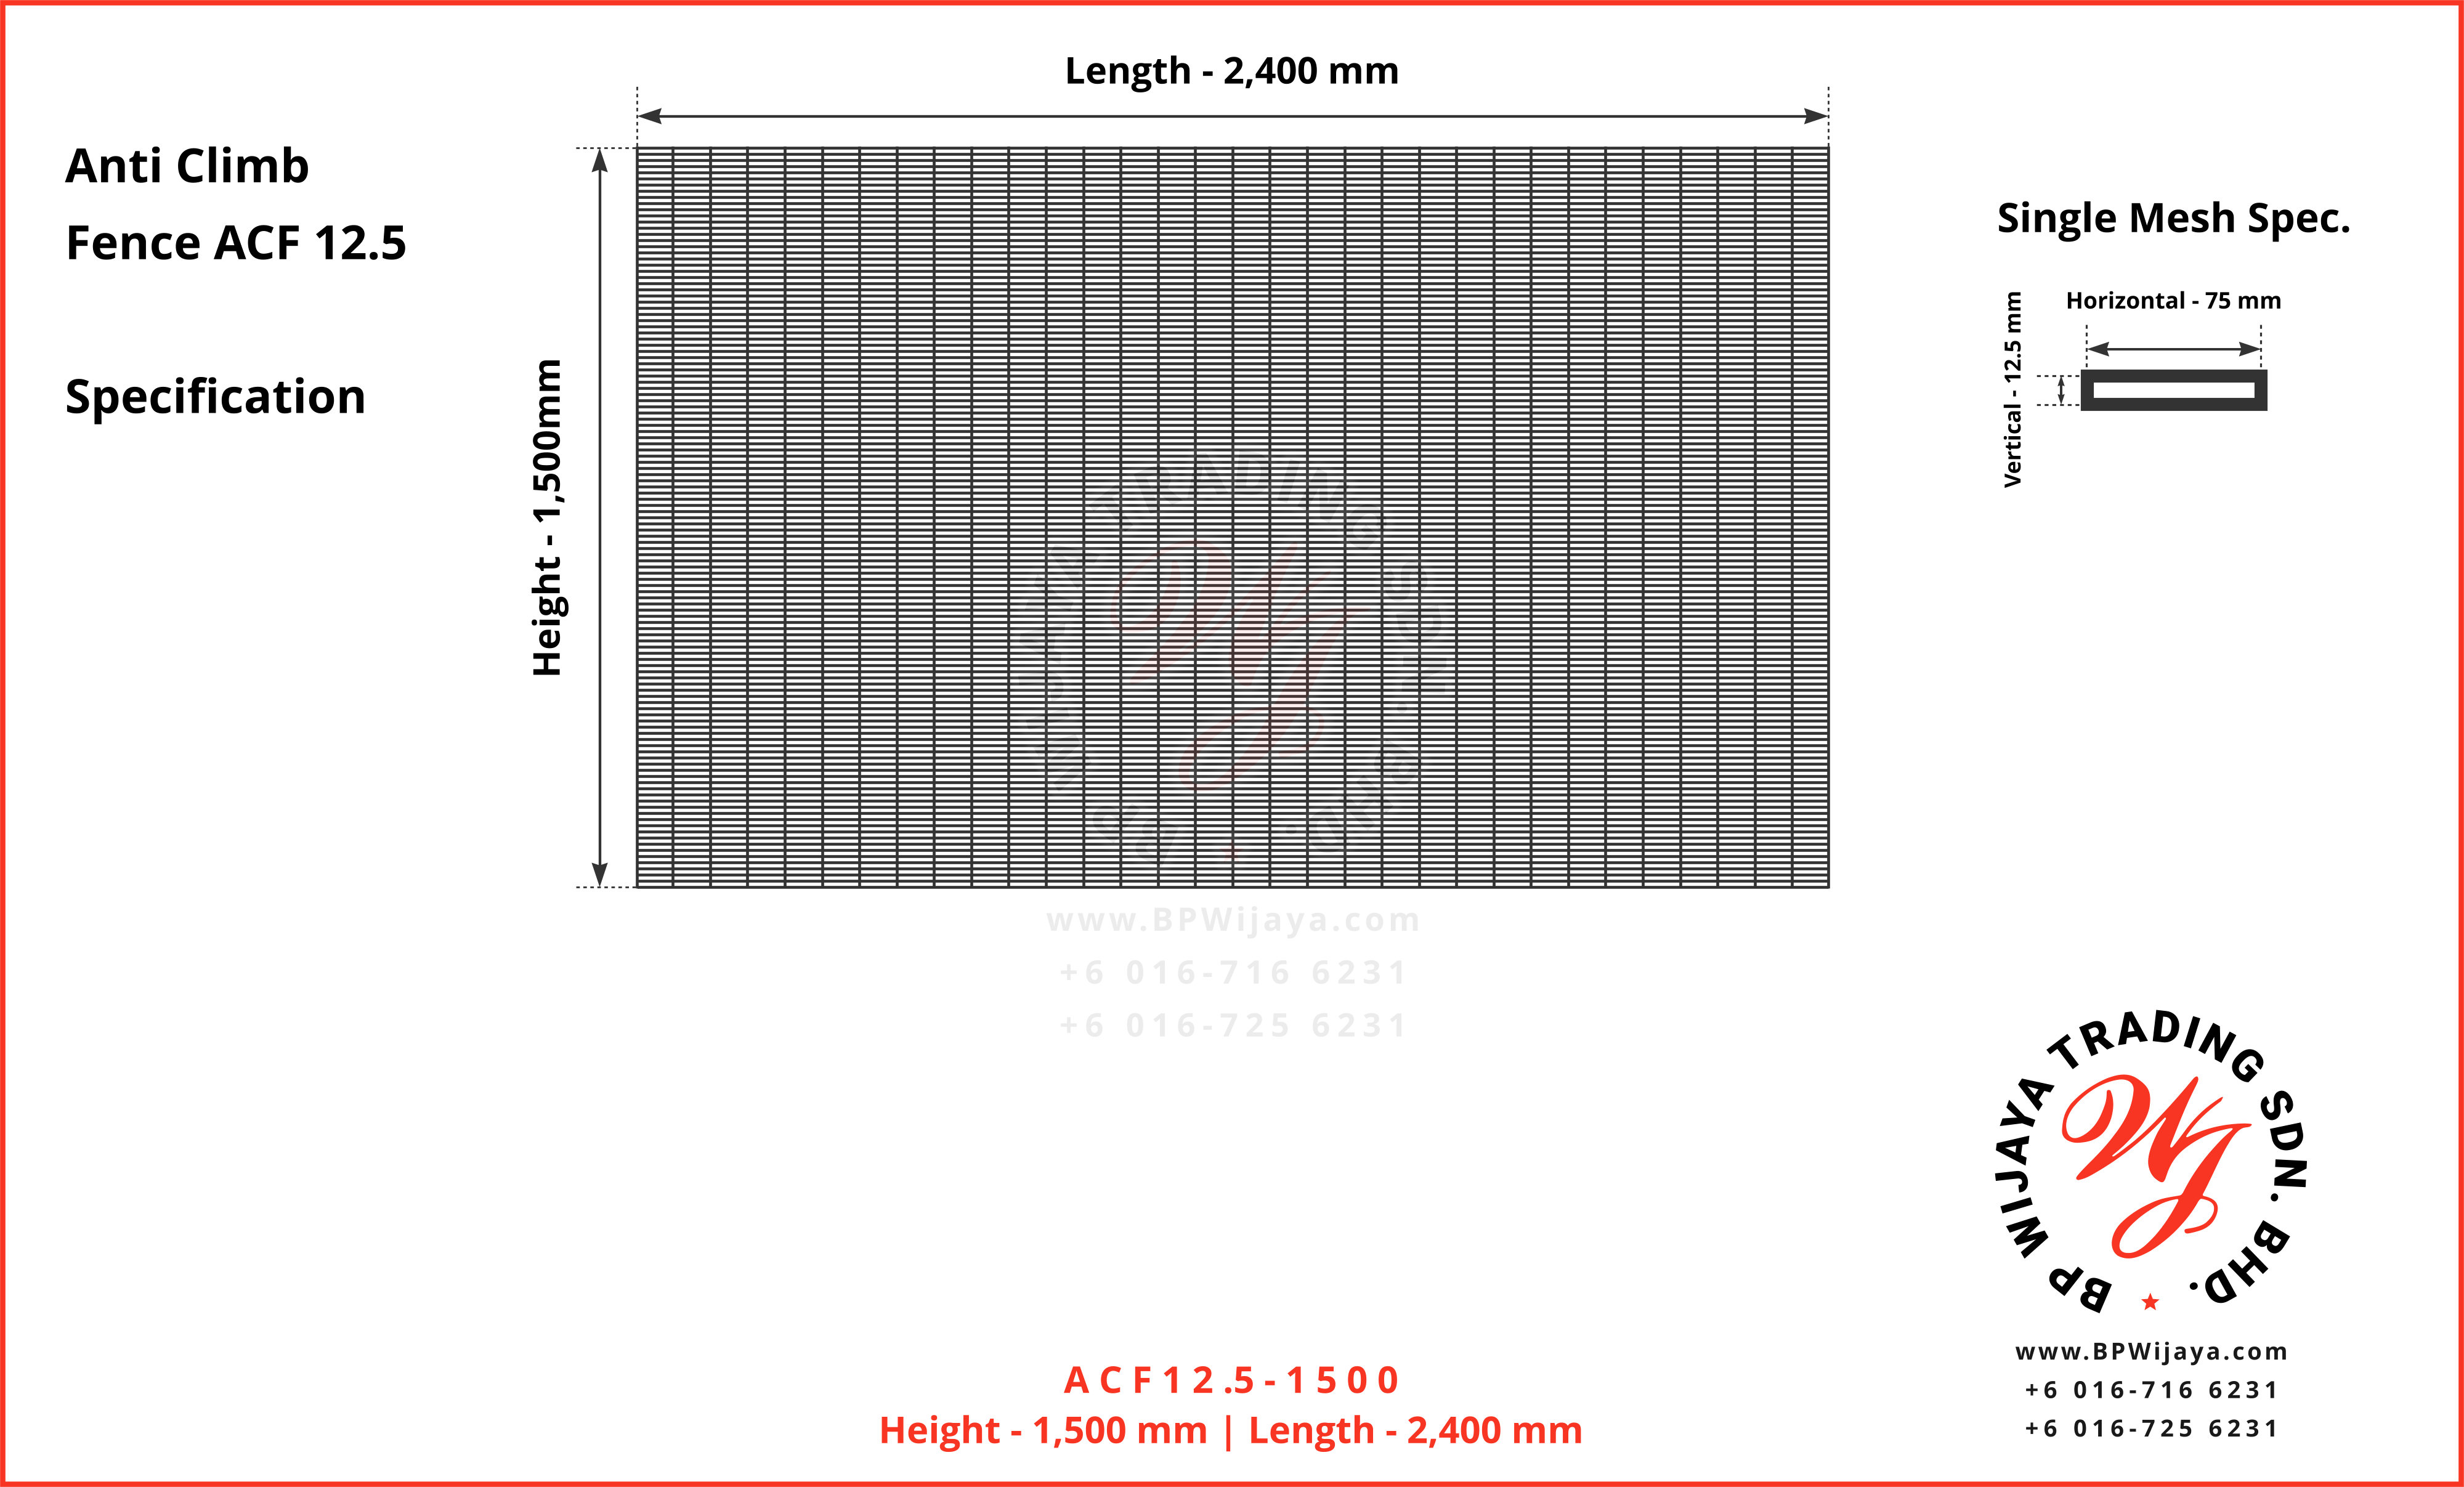 BP Wijaya Trading Sdn Bhd Malaysia manufacturer Distributor safety fences building materials Anti Climb Fence Mesh Wire Fence ACF12-5 Fence BRC from Johor Batu Pahat A04